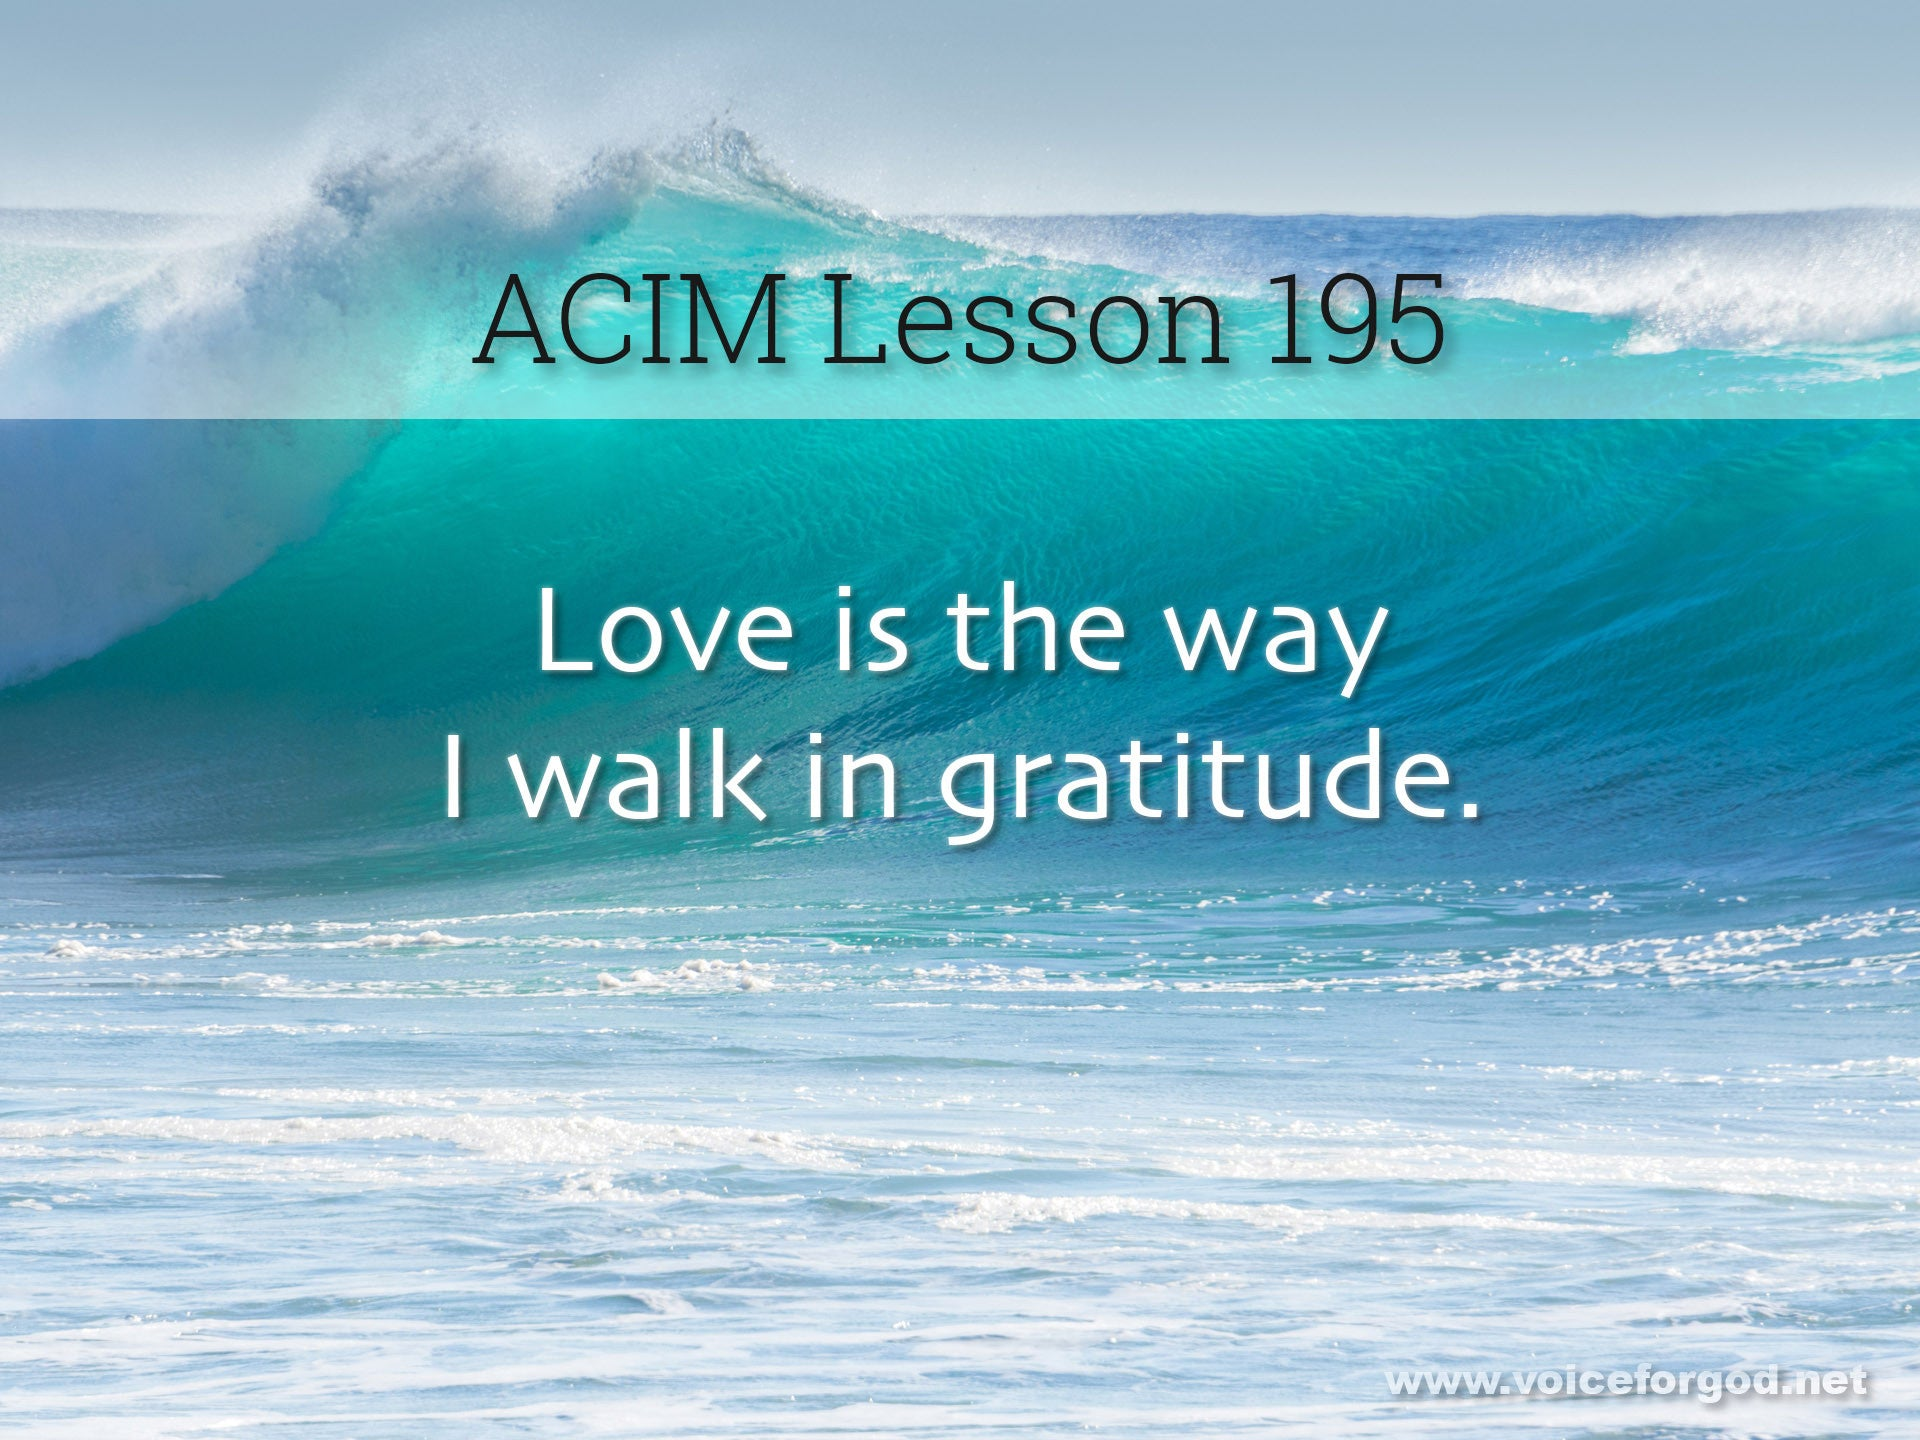 ACIM Lesson 195 - A Course in Miracles Workbook Lesson 195